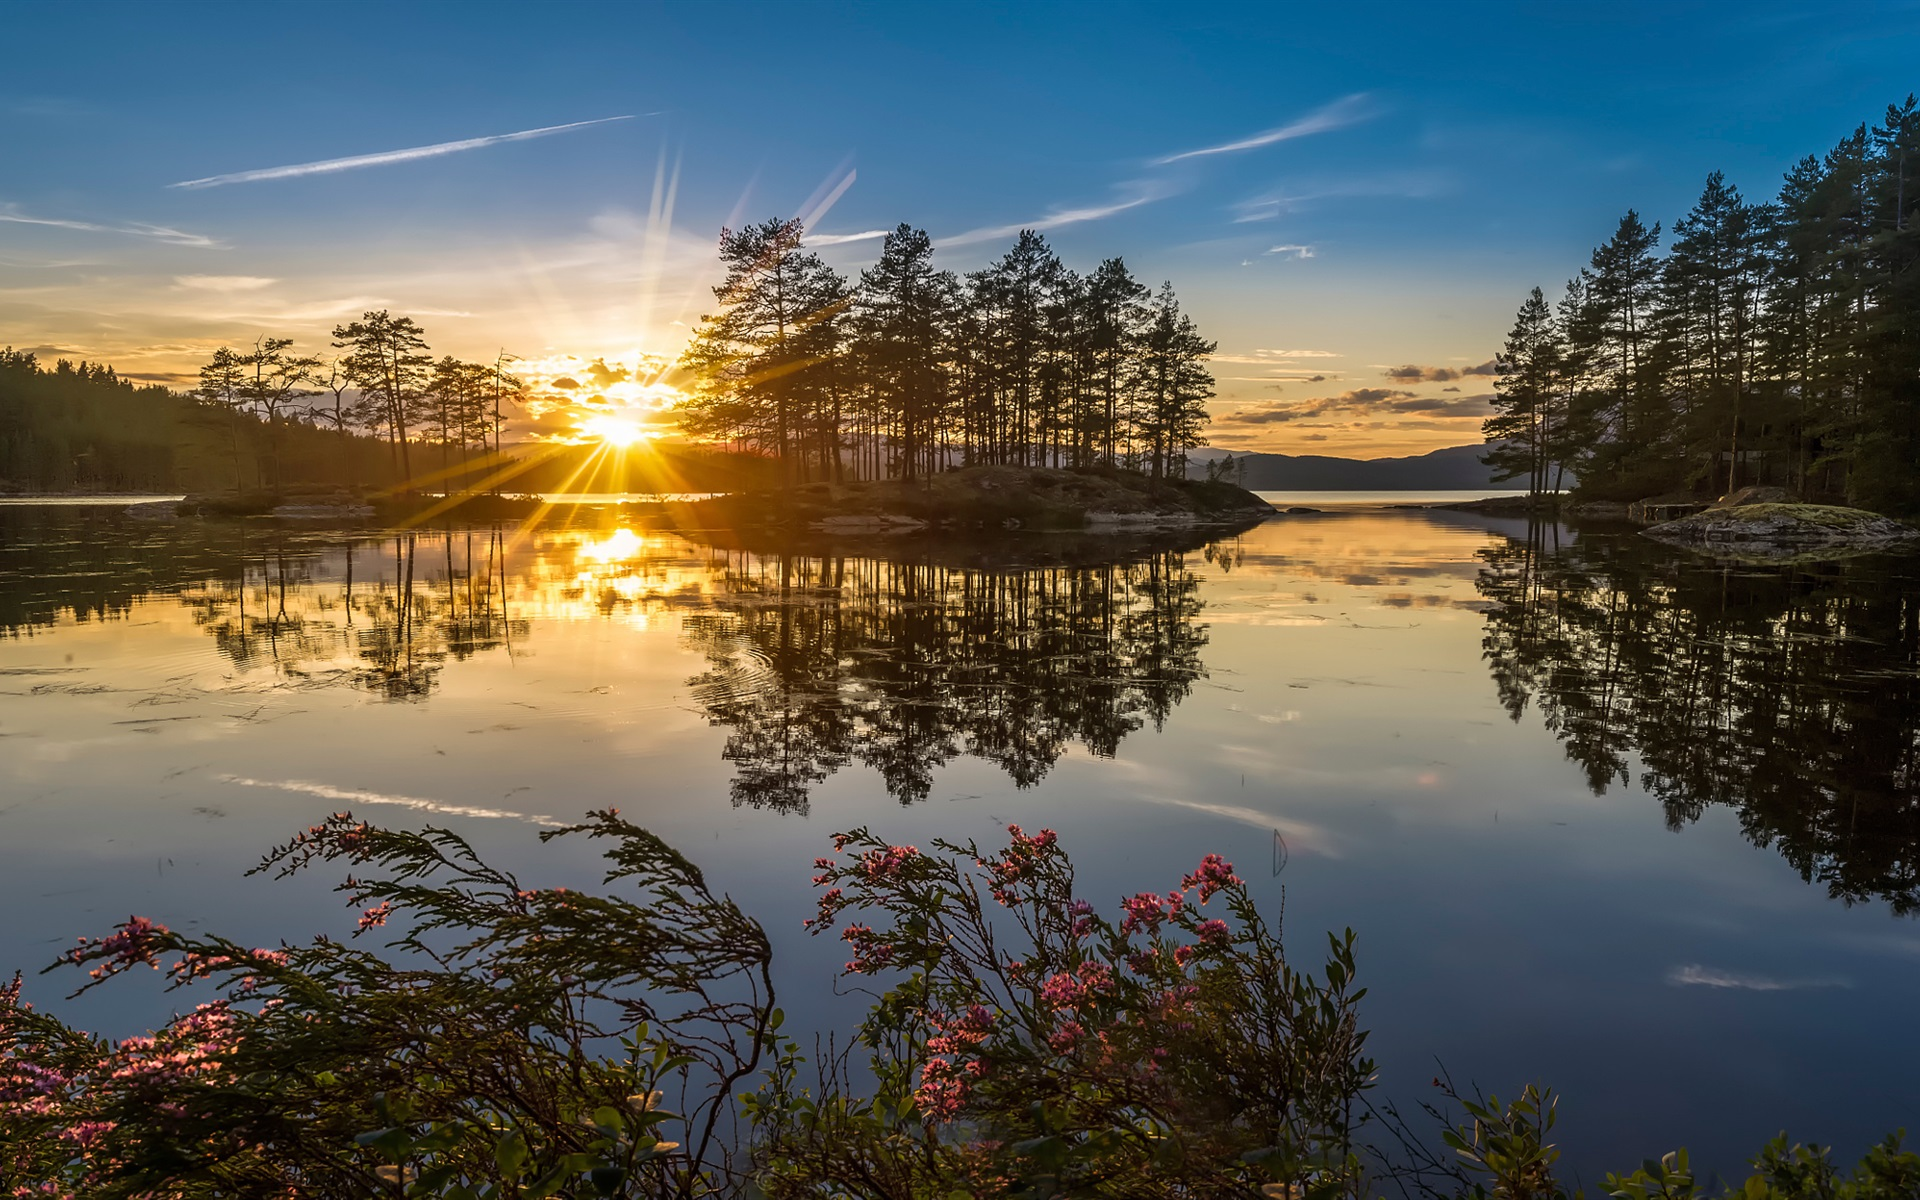 Cute Love Wallpapers Hd Full Size Norway Nature Sunset Lake Trees Sun Rays Wallpaper